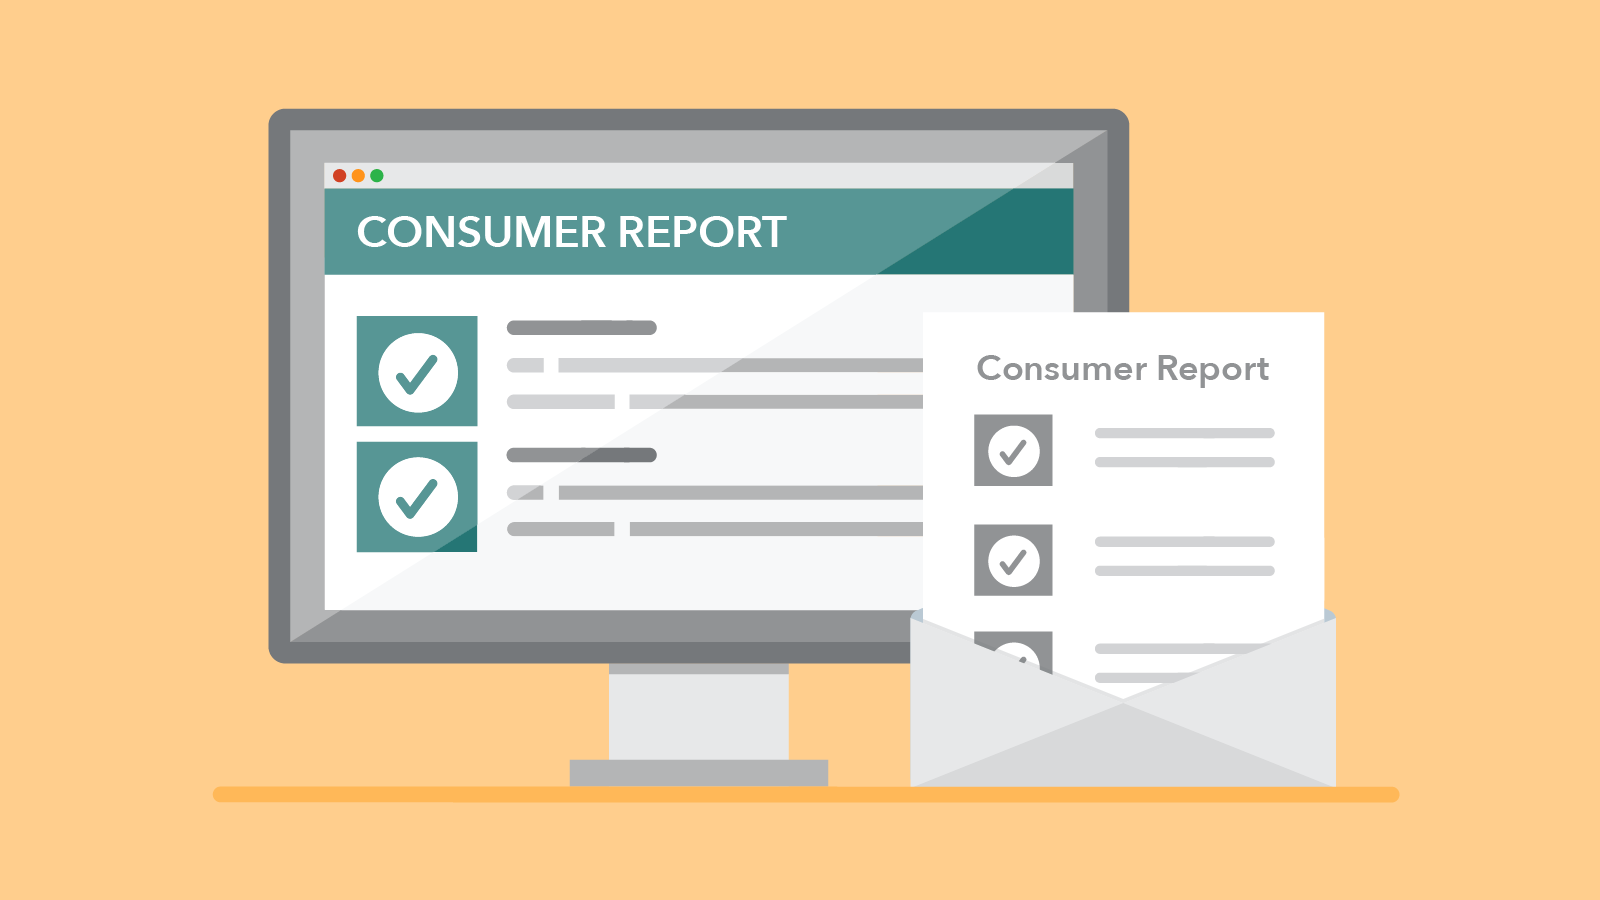 graphic of screen and document with consumer reports titles